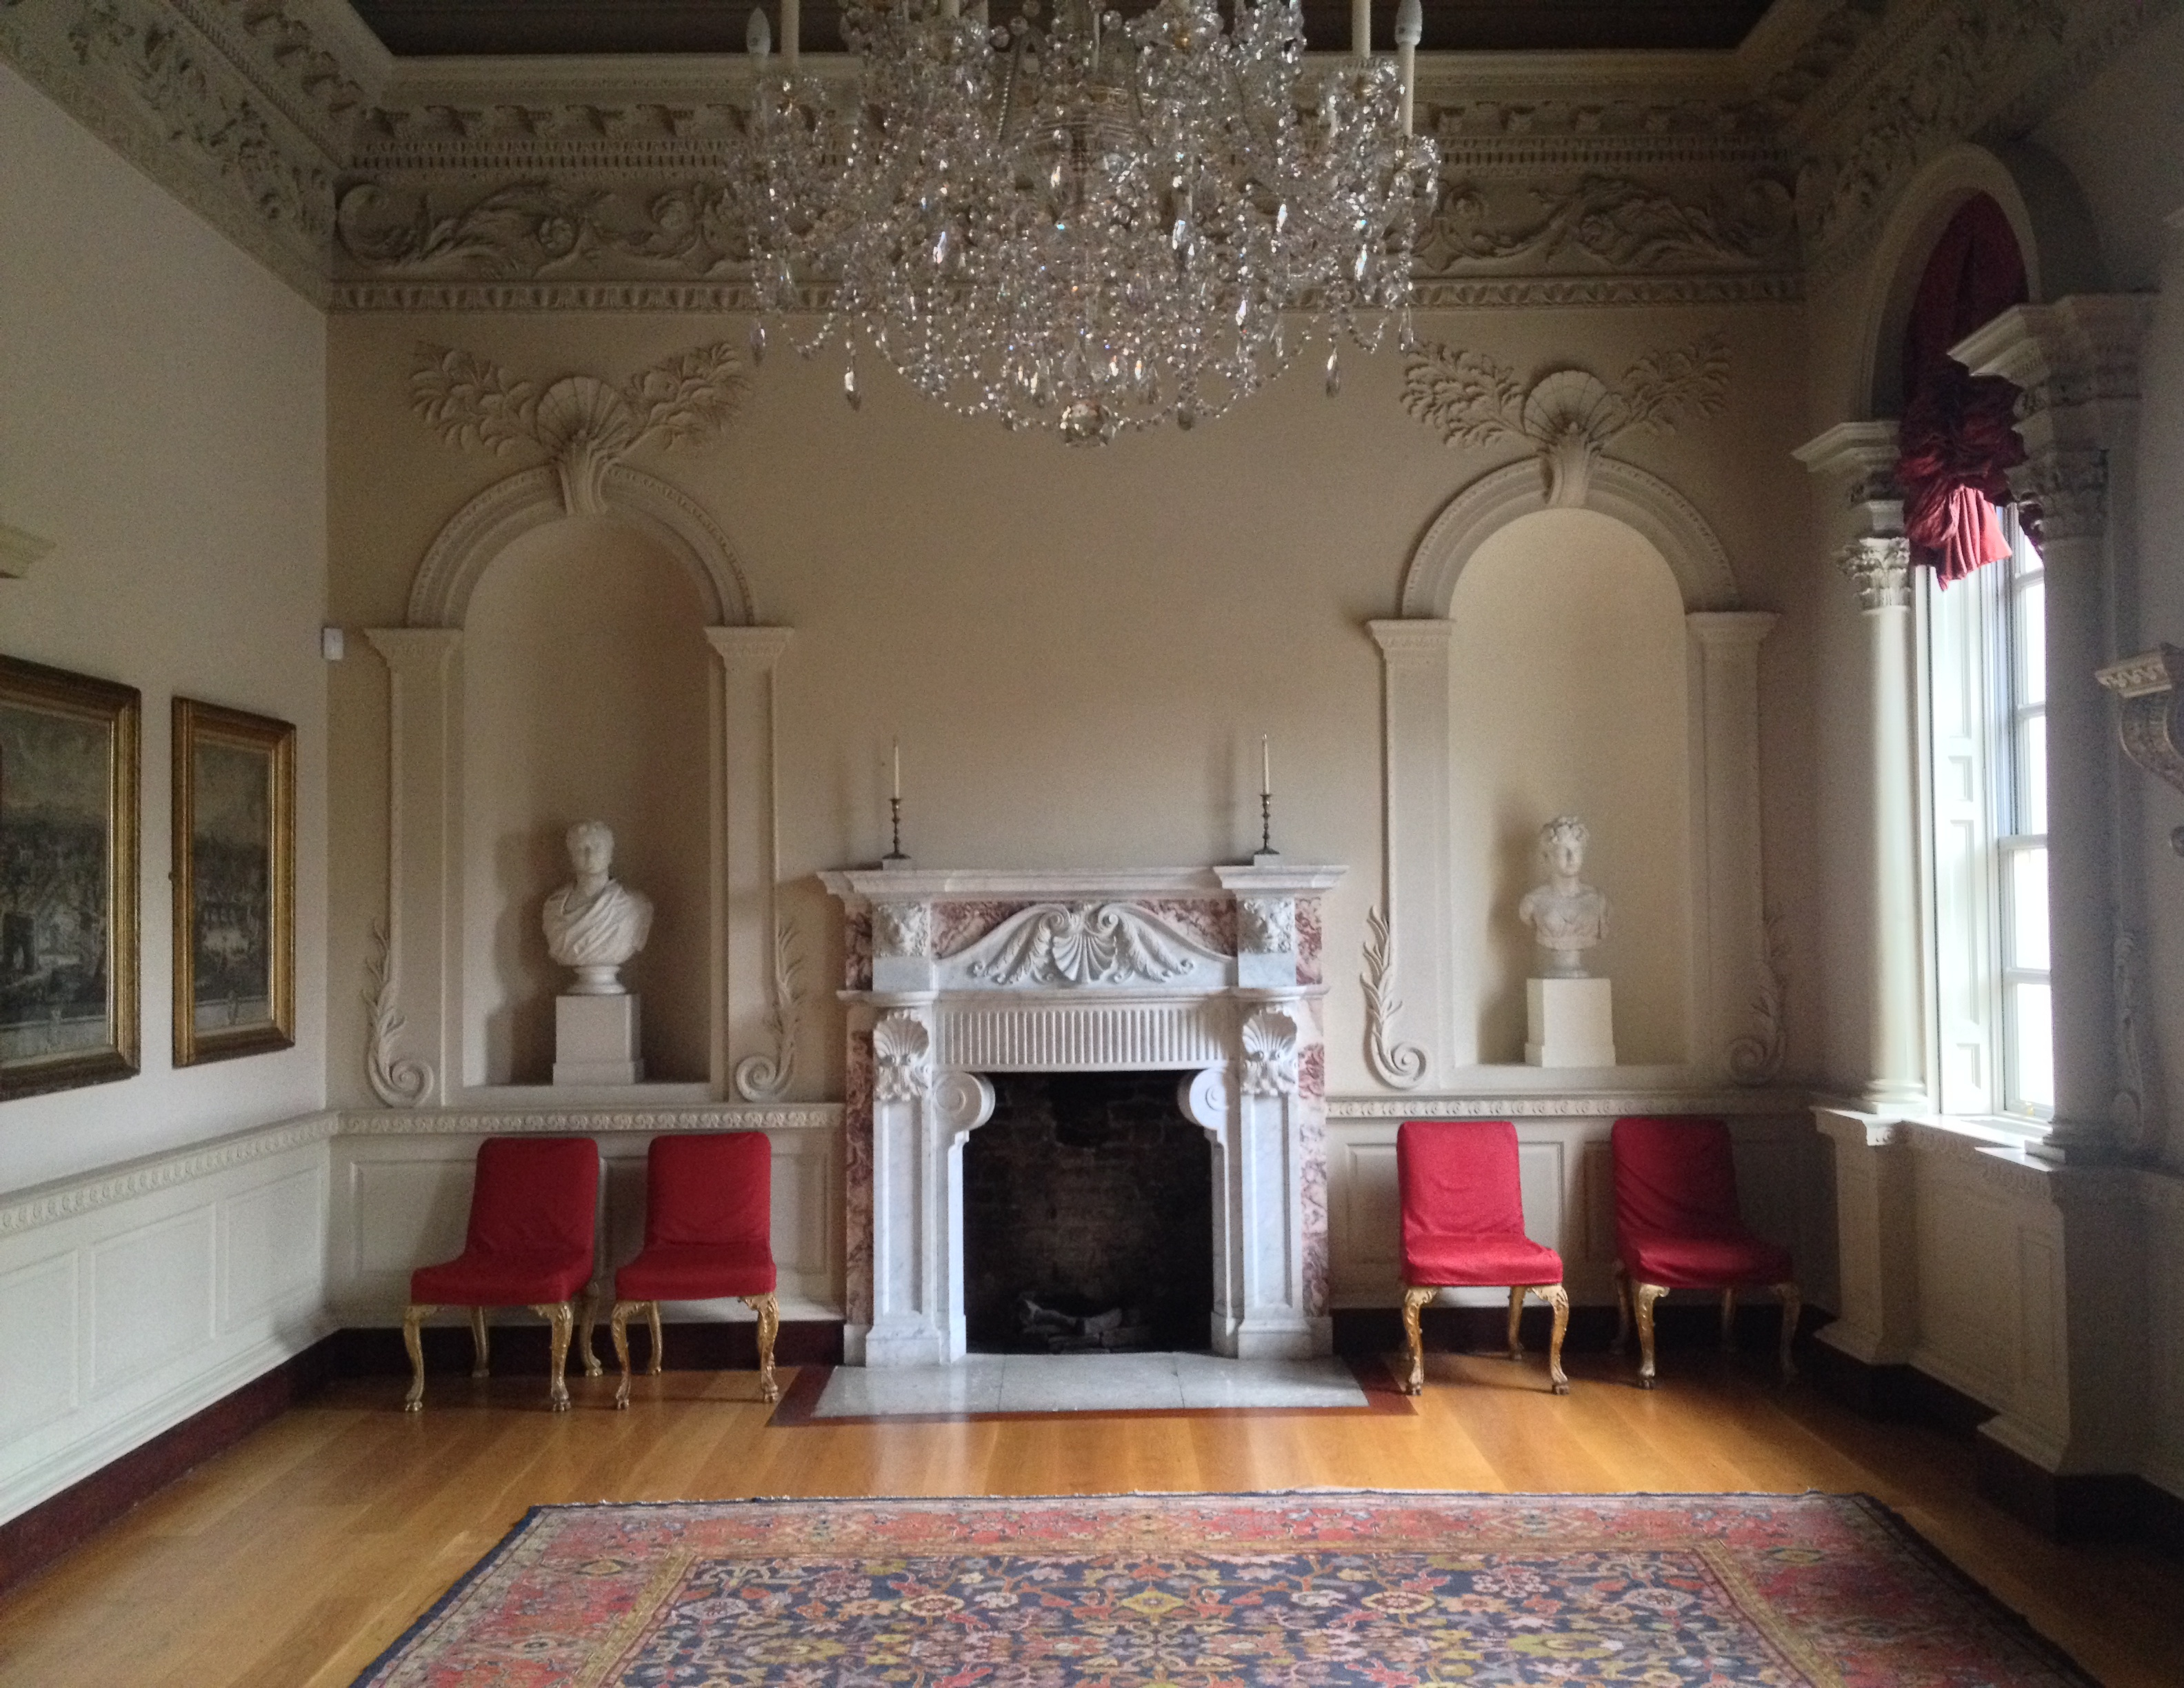 The Most Beautiful Room in Ireland? « The Irish Aesthete on Beautiful Room  id=46261